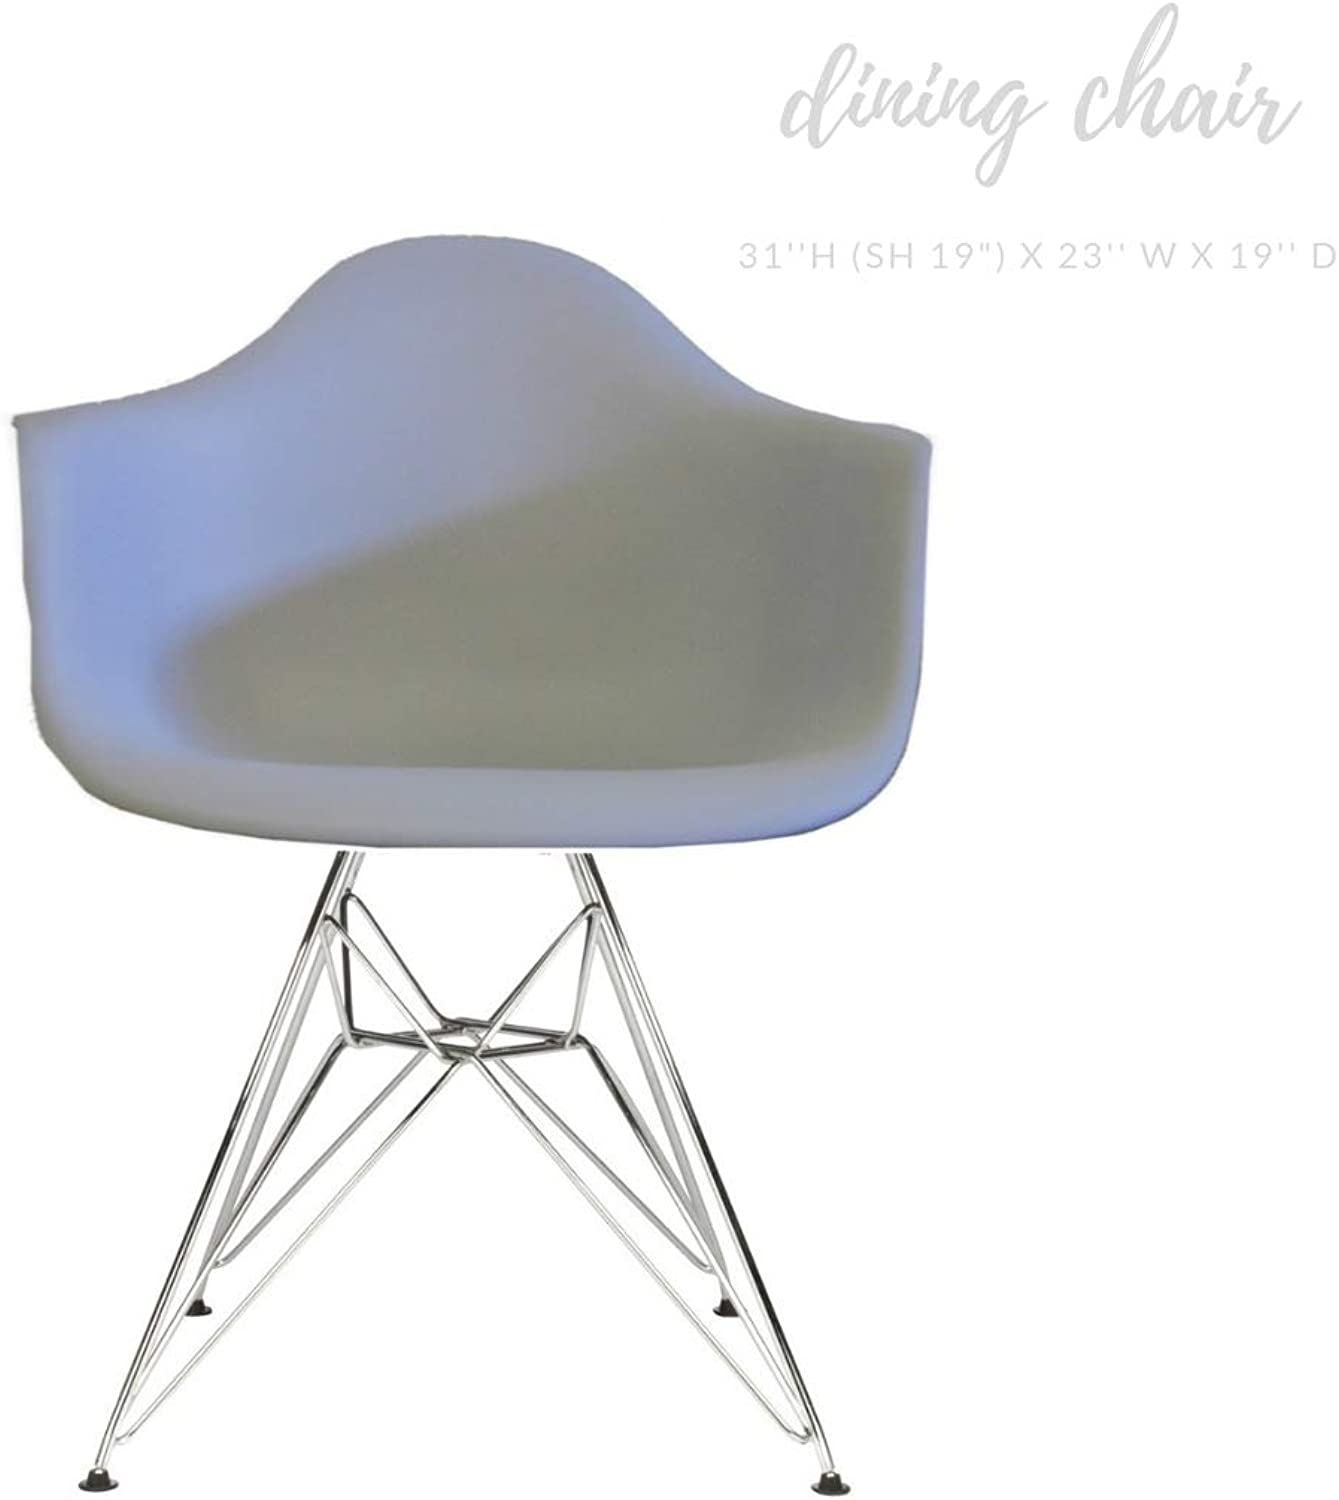 Take Me Home Furniture Eiffel Style Bucket Chair with Chrome Legs, Light Grey, Dining Chair